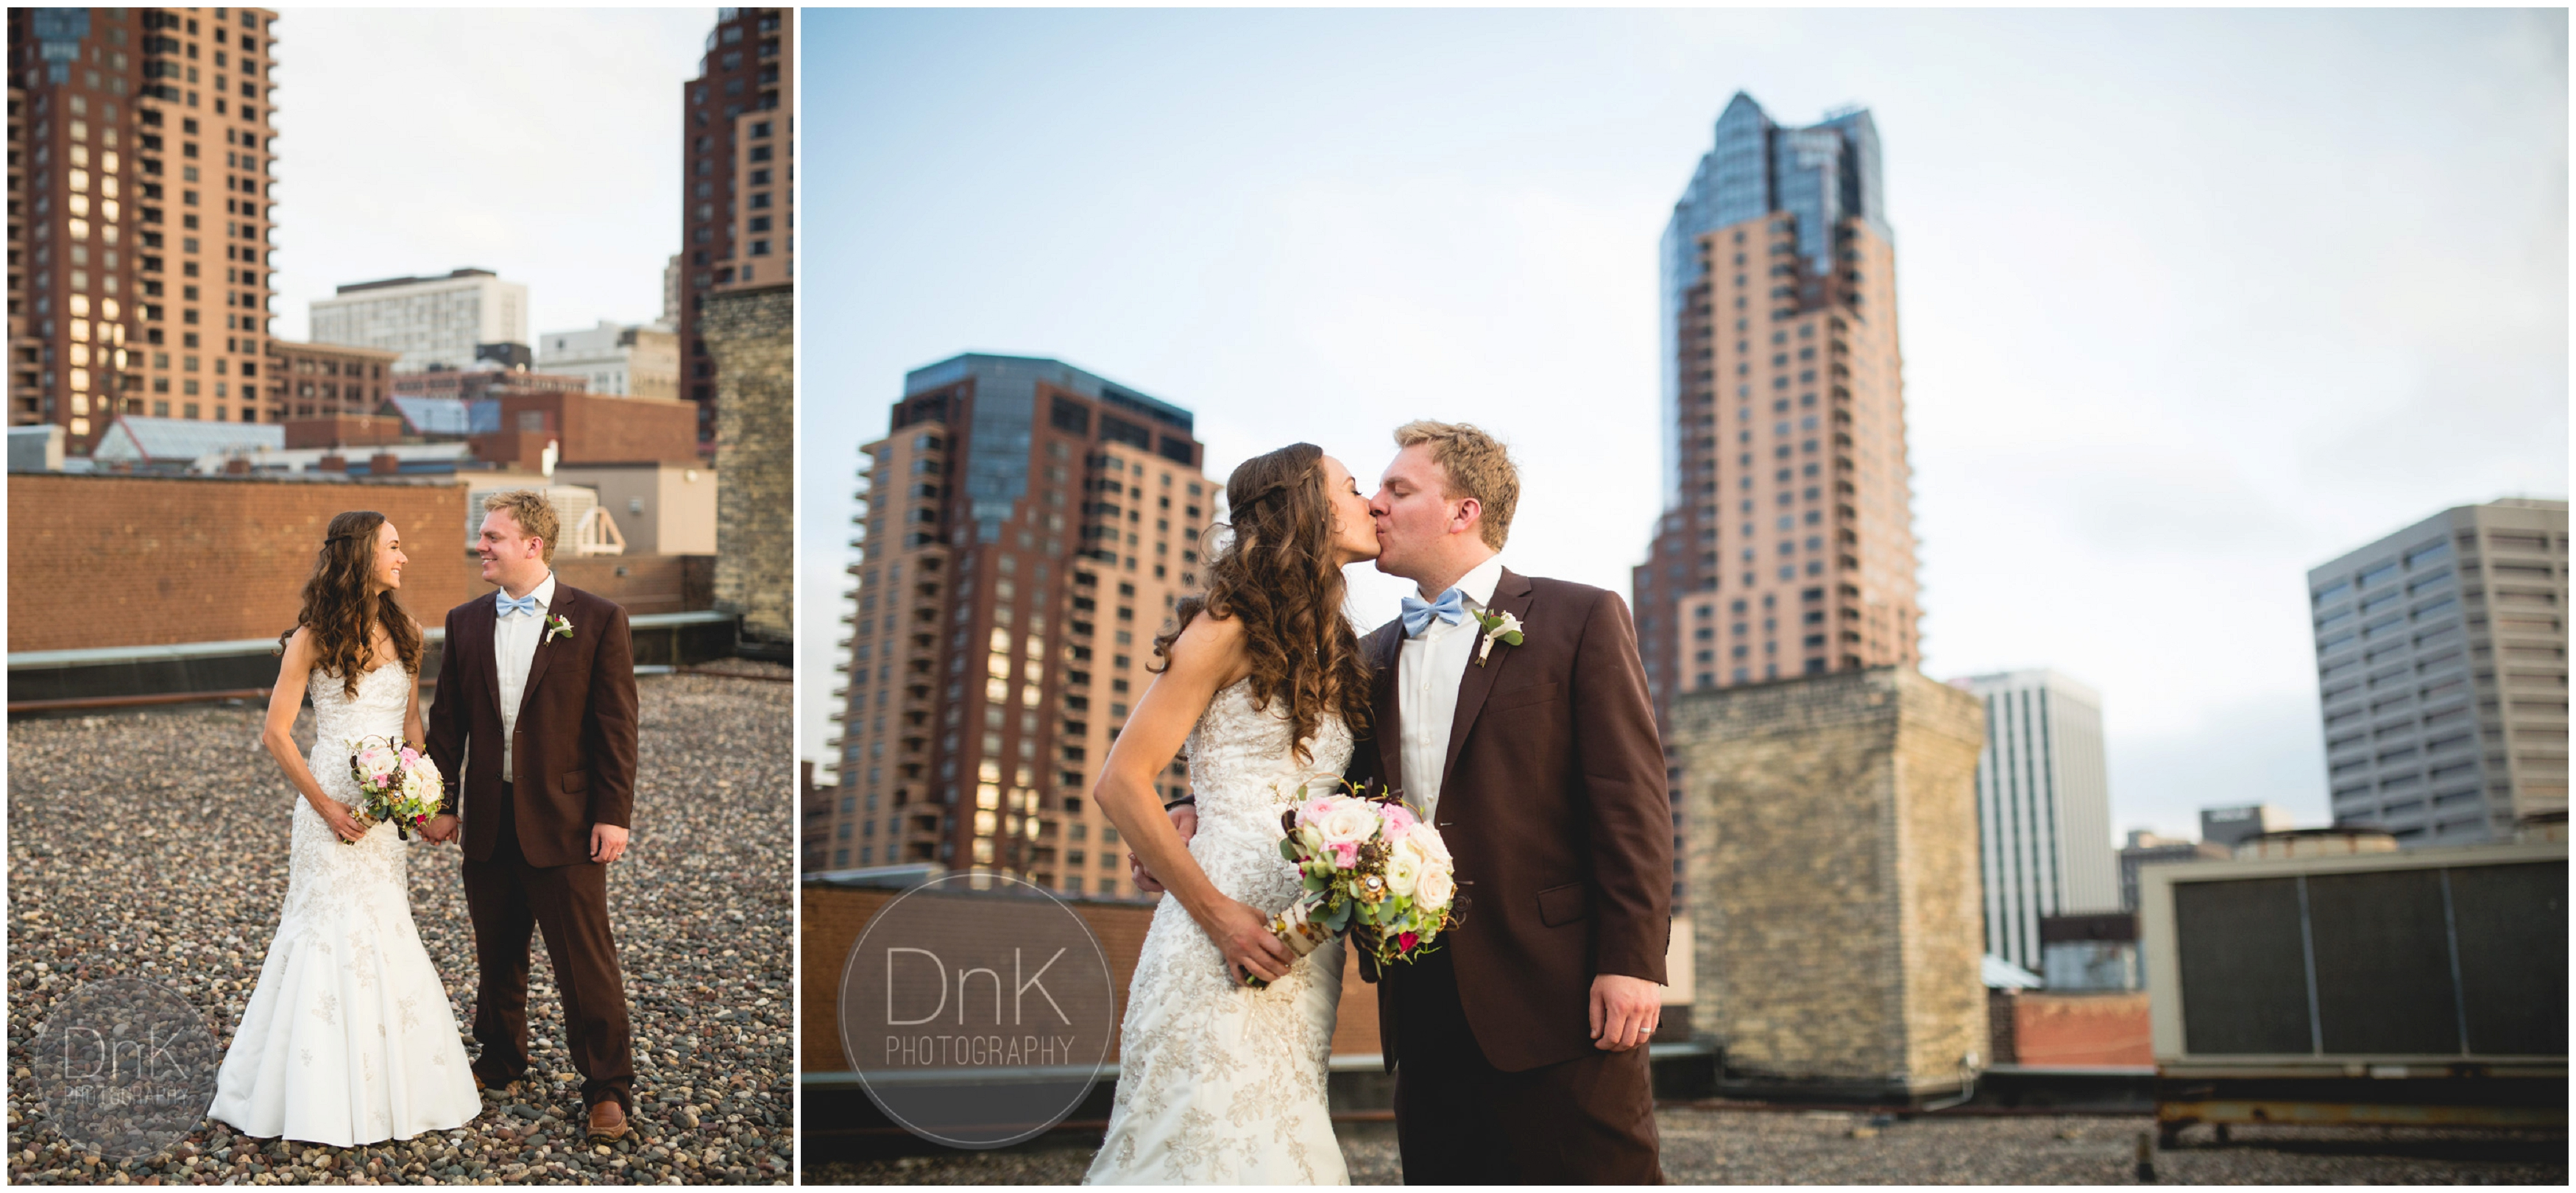 29 - 413 on Wacouta Wedding Pictures Rooftop Wedding Pictures Minneapolis Wedding Photographer